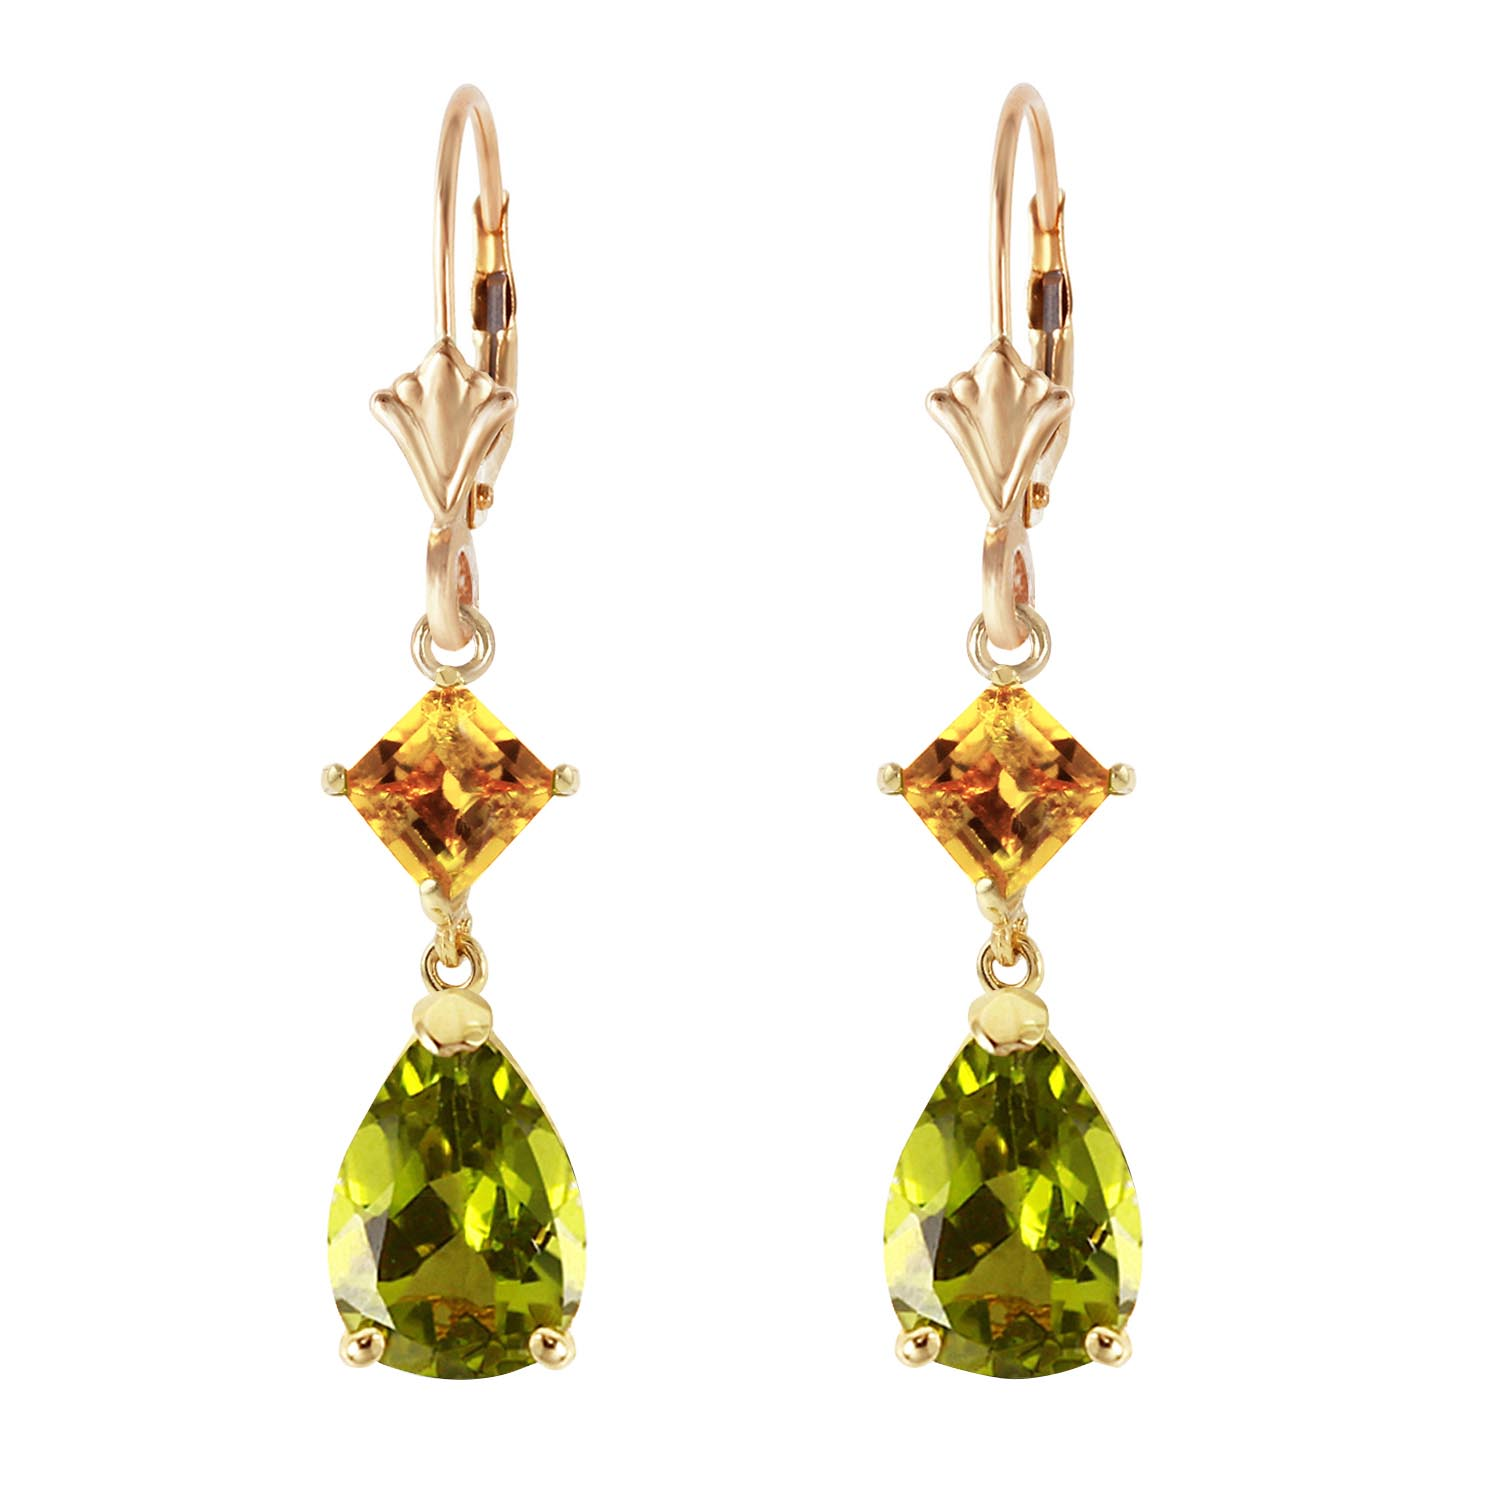 Peridot and Citrine Droplet Earrings 4.5ctw in 9ct Gold